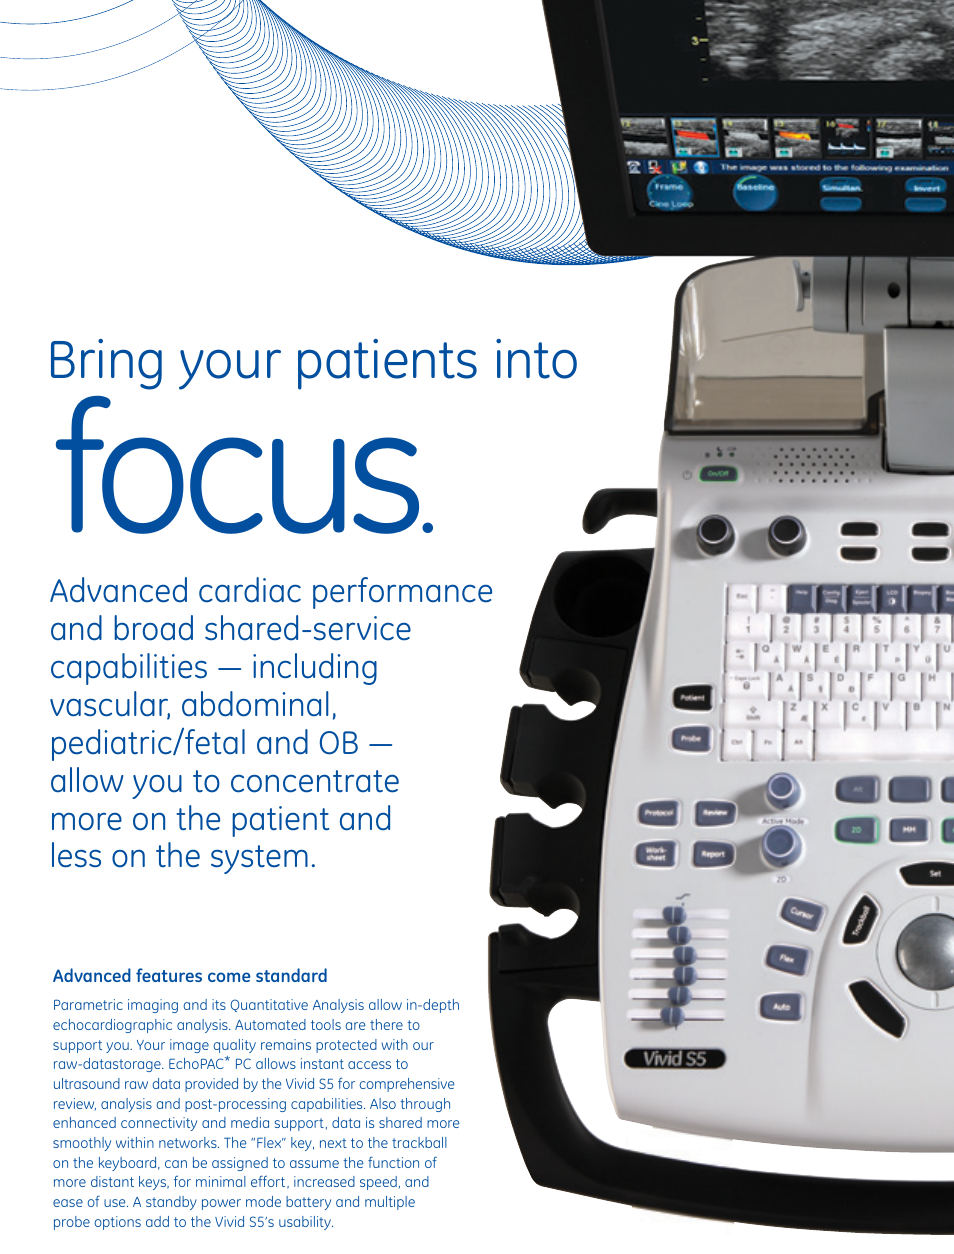 Focus, Bring your patients into | GE Healthcare Vivid S5 Cardiovascular  ultrasound system User Manual | Page 5 / 8